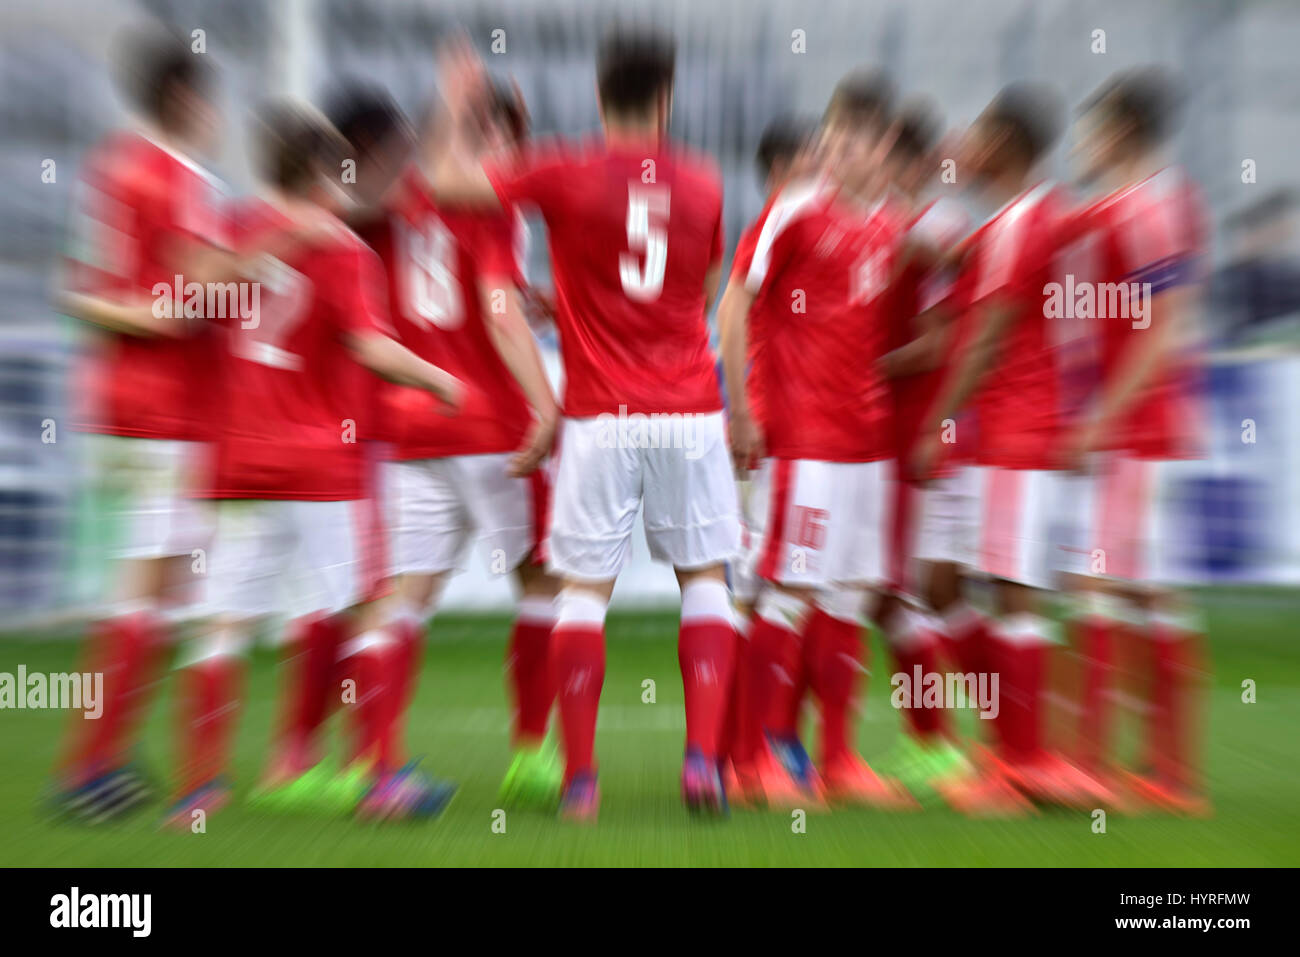 Football players in a group, Biel, Switzerland - Stock Image